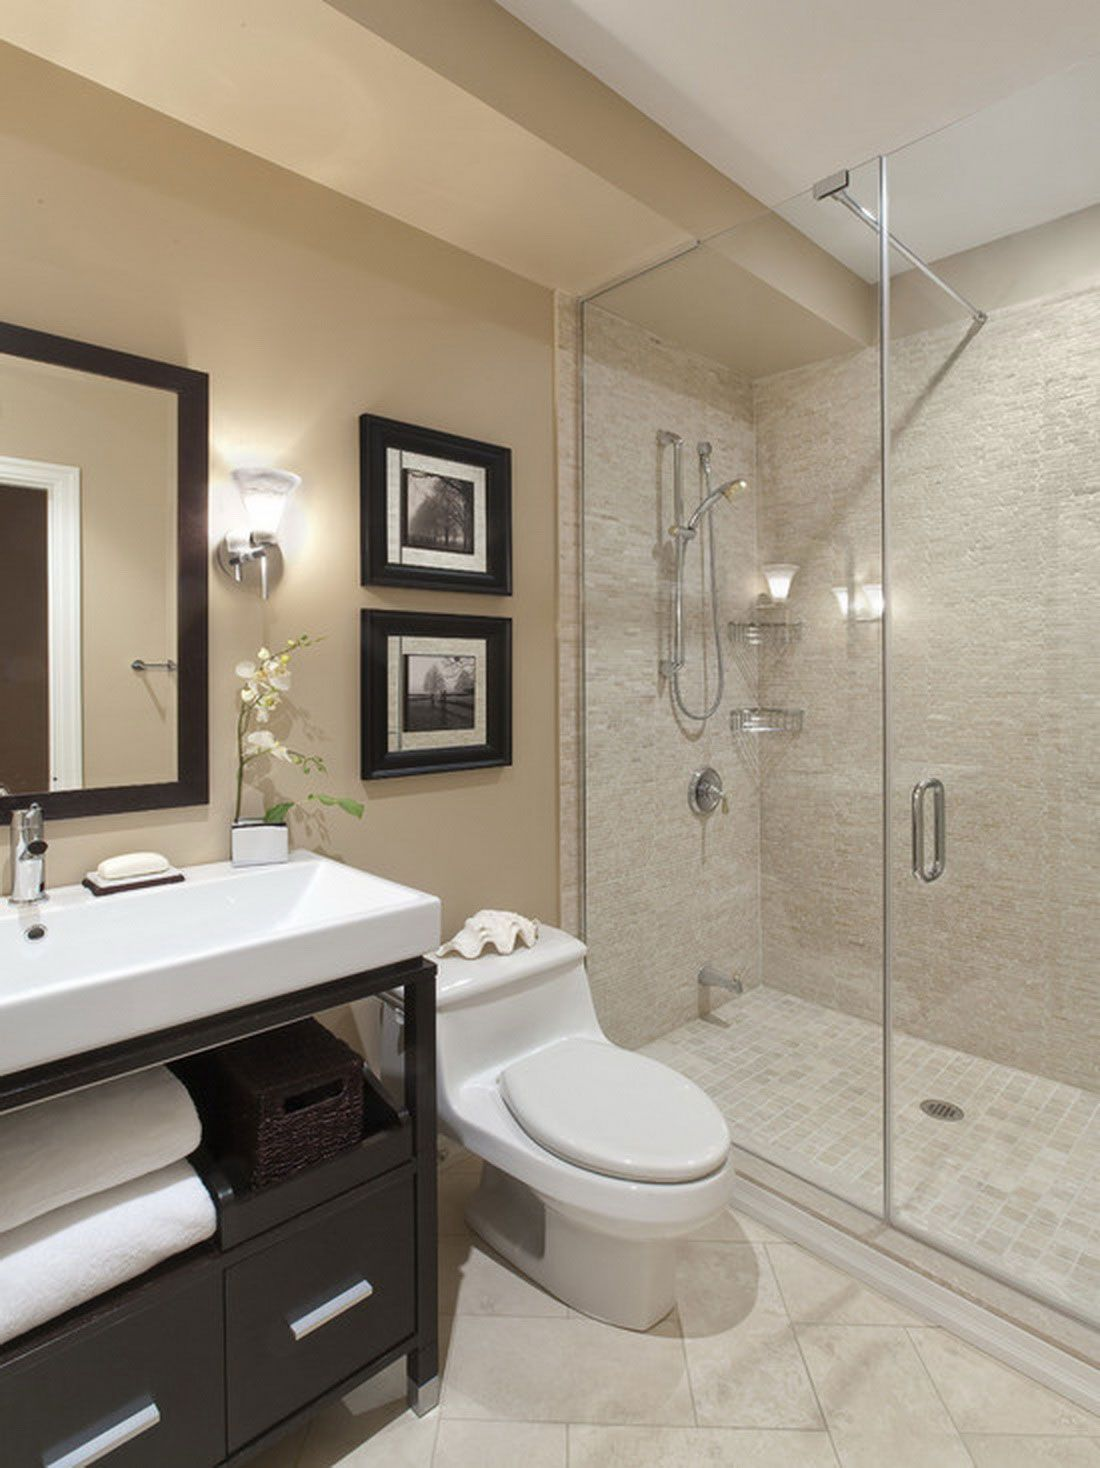 15 extraordinary transitional bathroom designs for any home - Small Shower Room Ideas